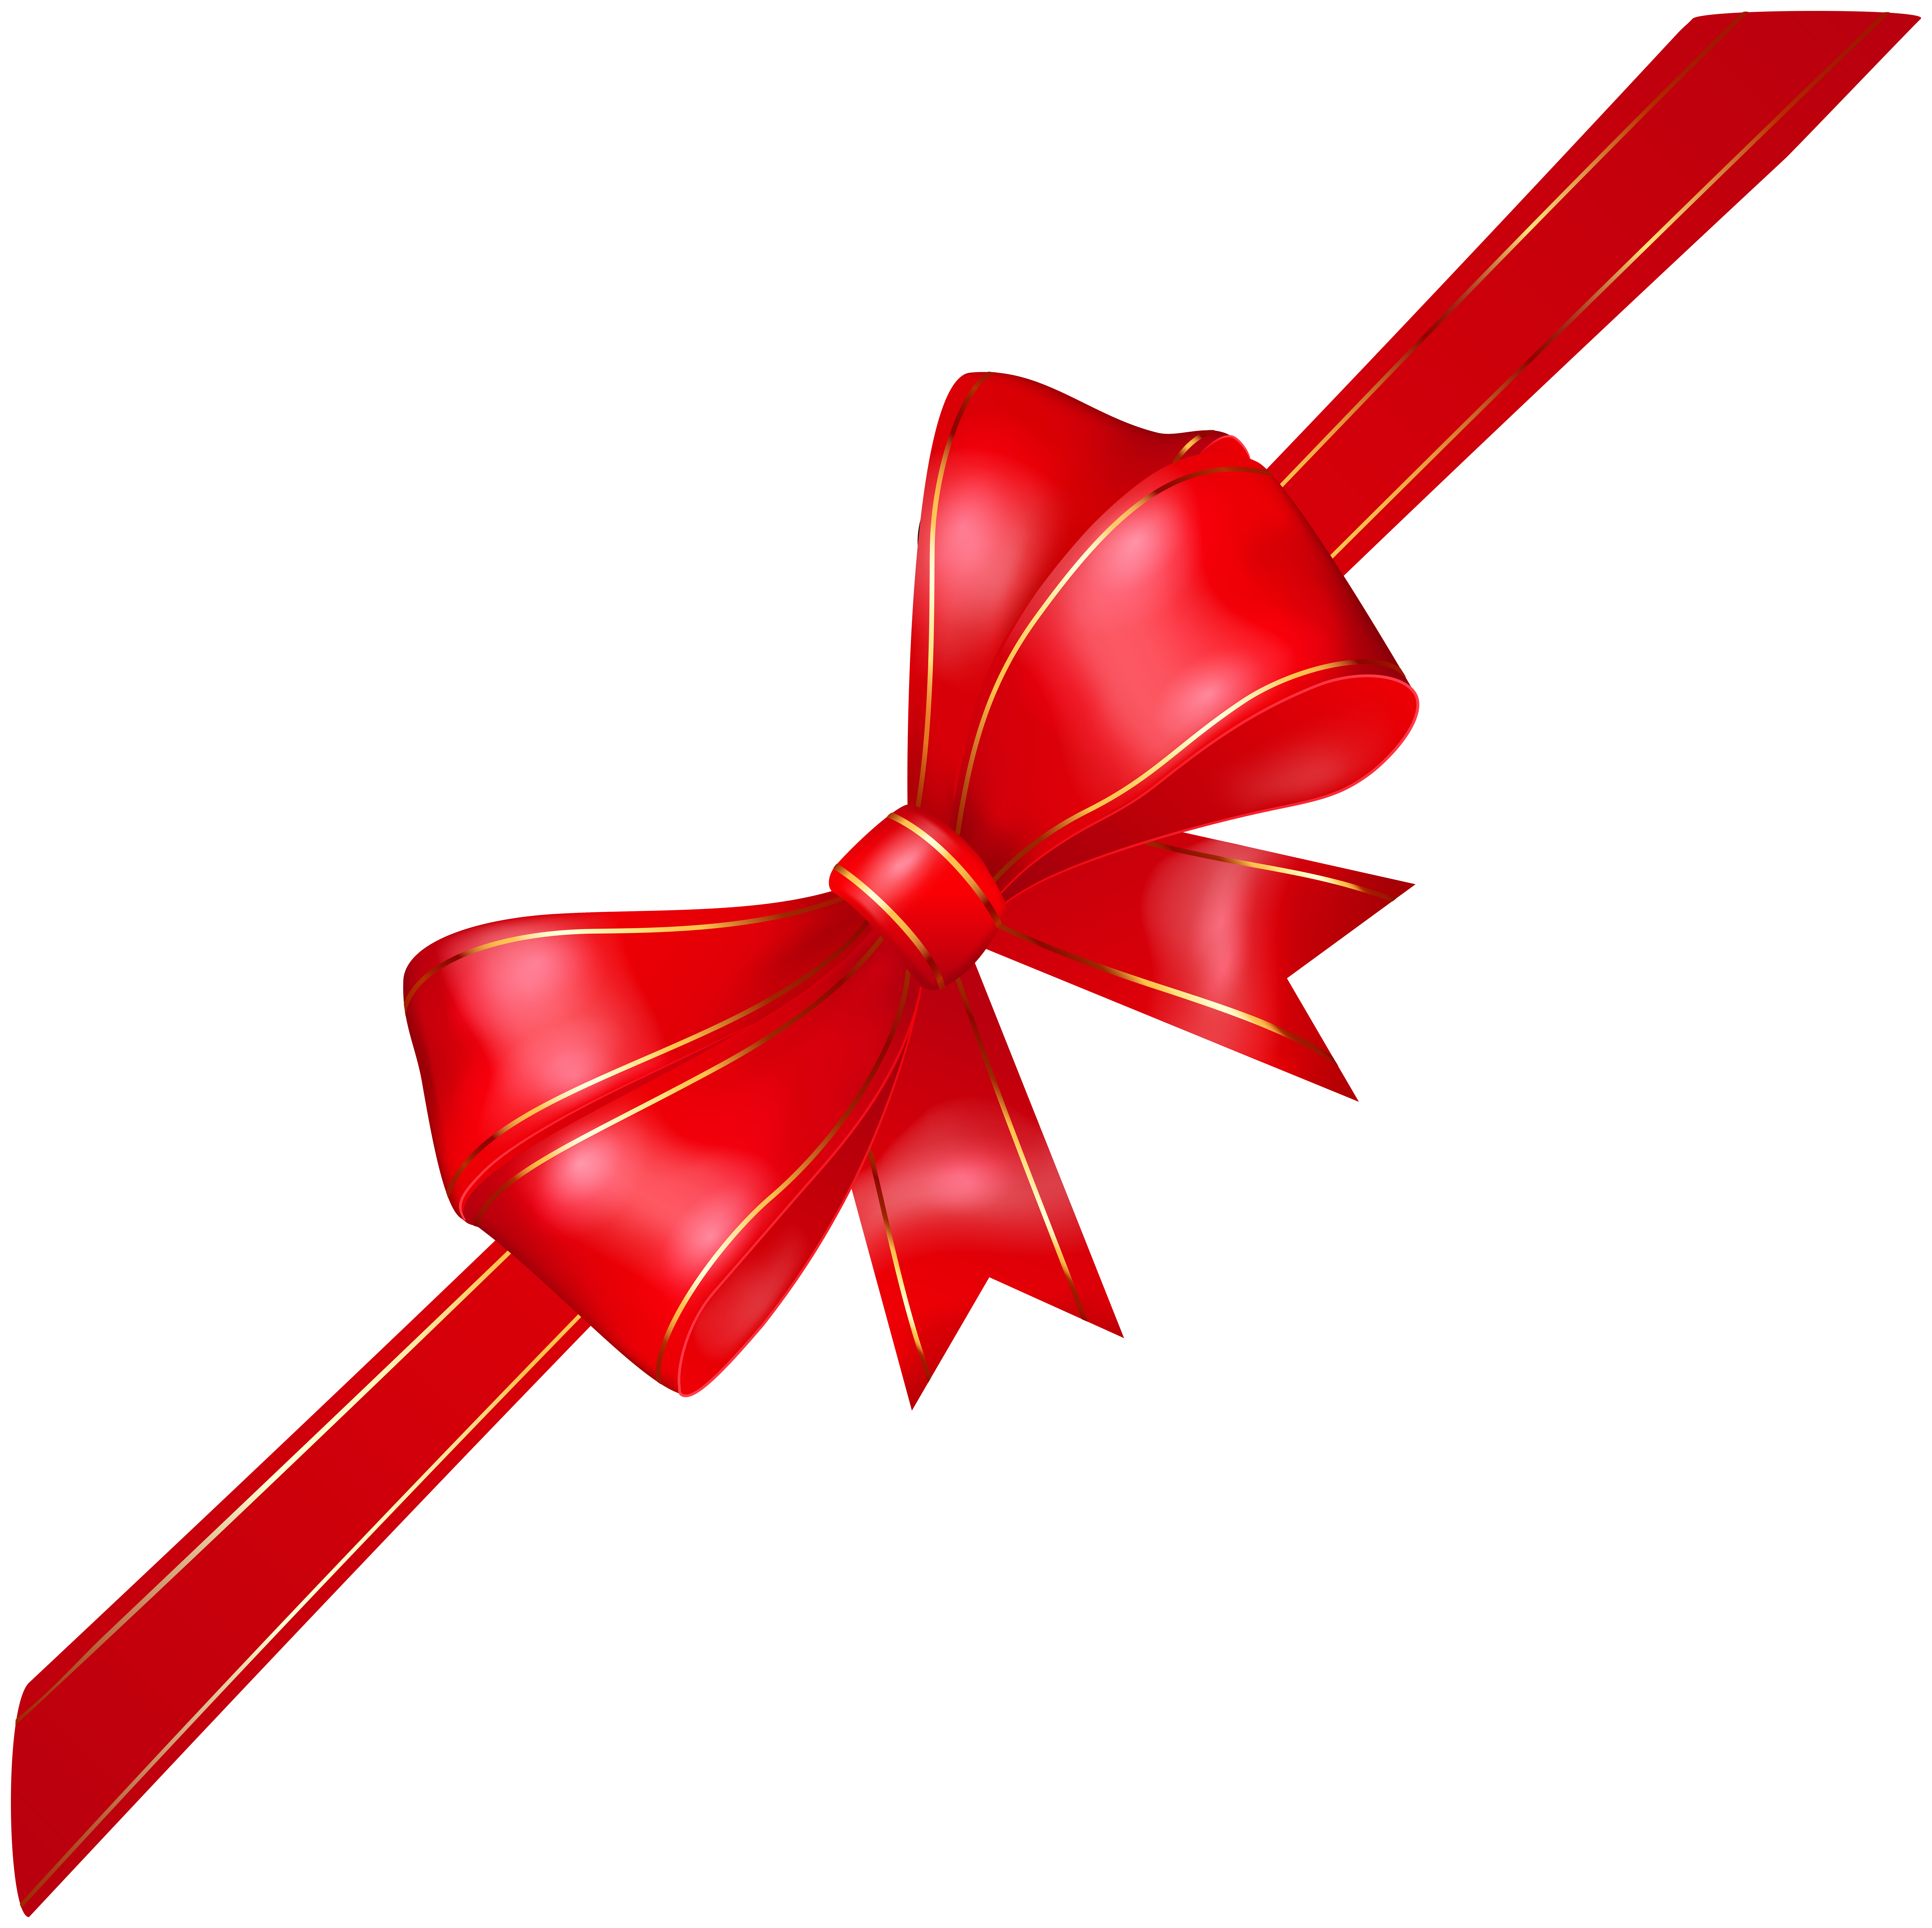 picture royalty free library Red bow png image. Banners transparent corner